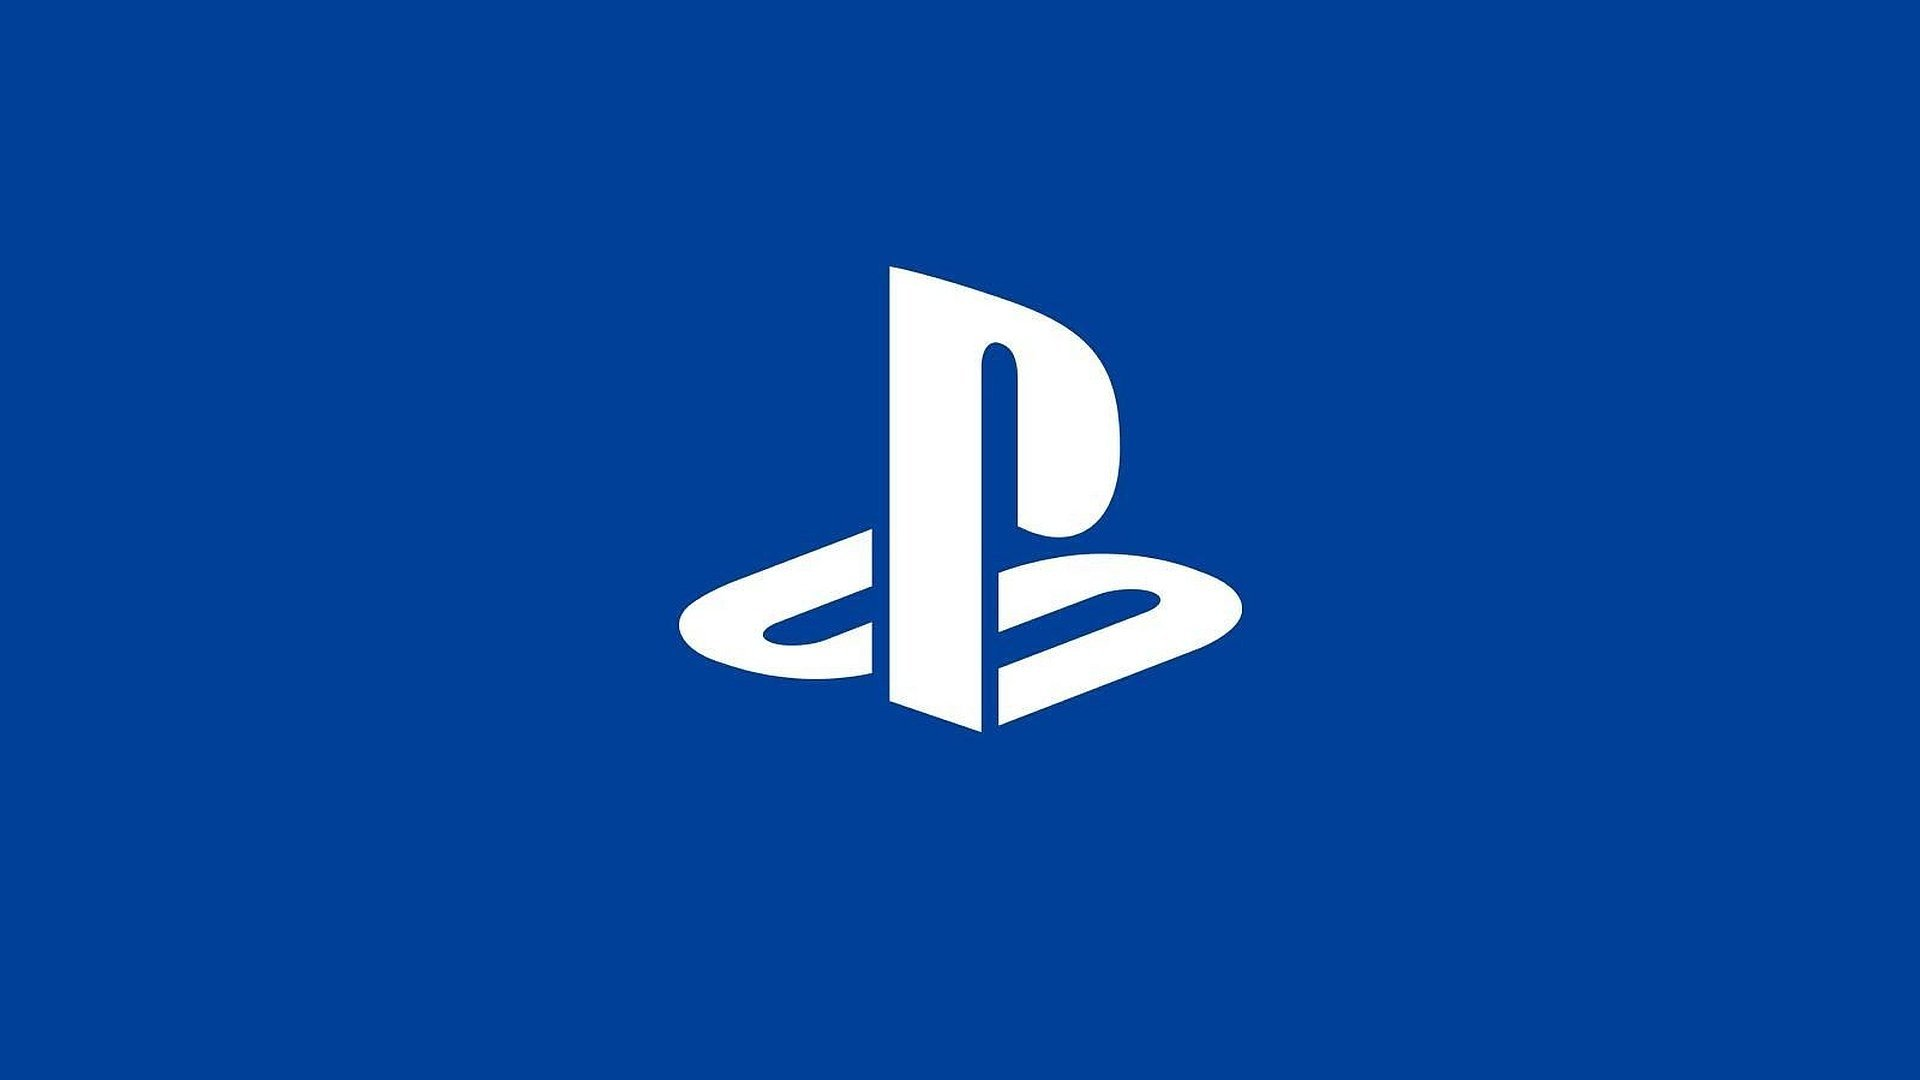 PlayStation Online ID name change feature coming soon